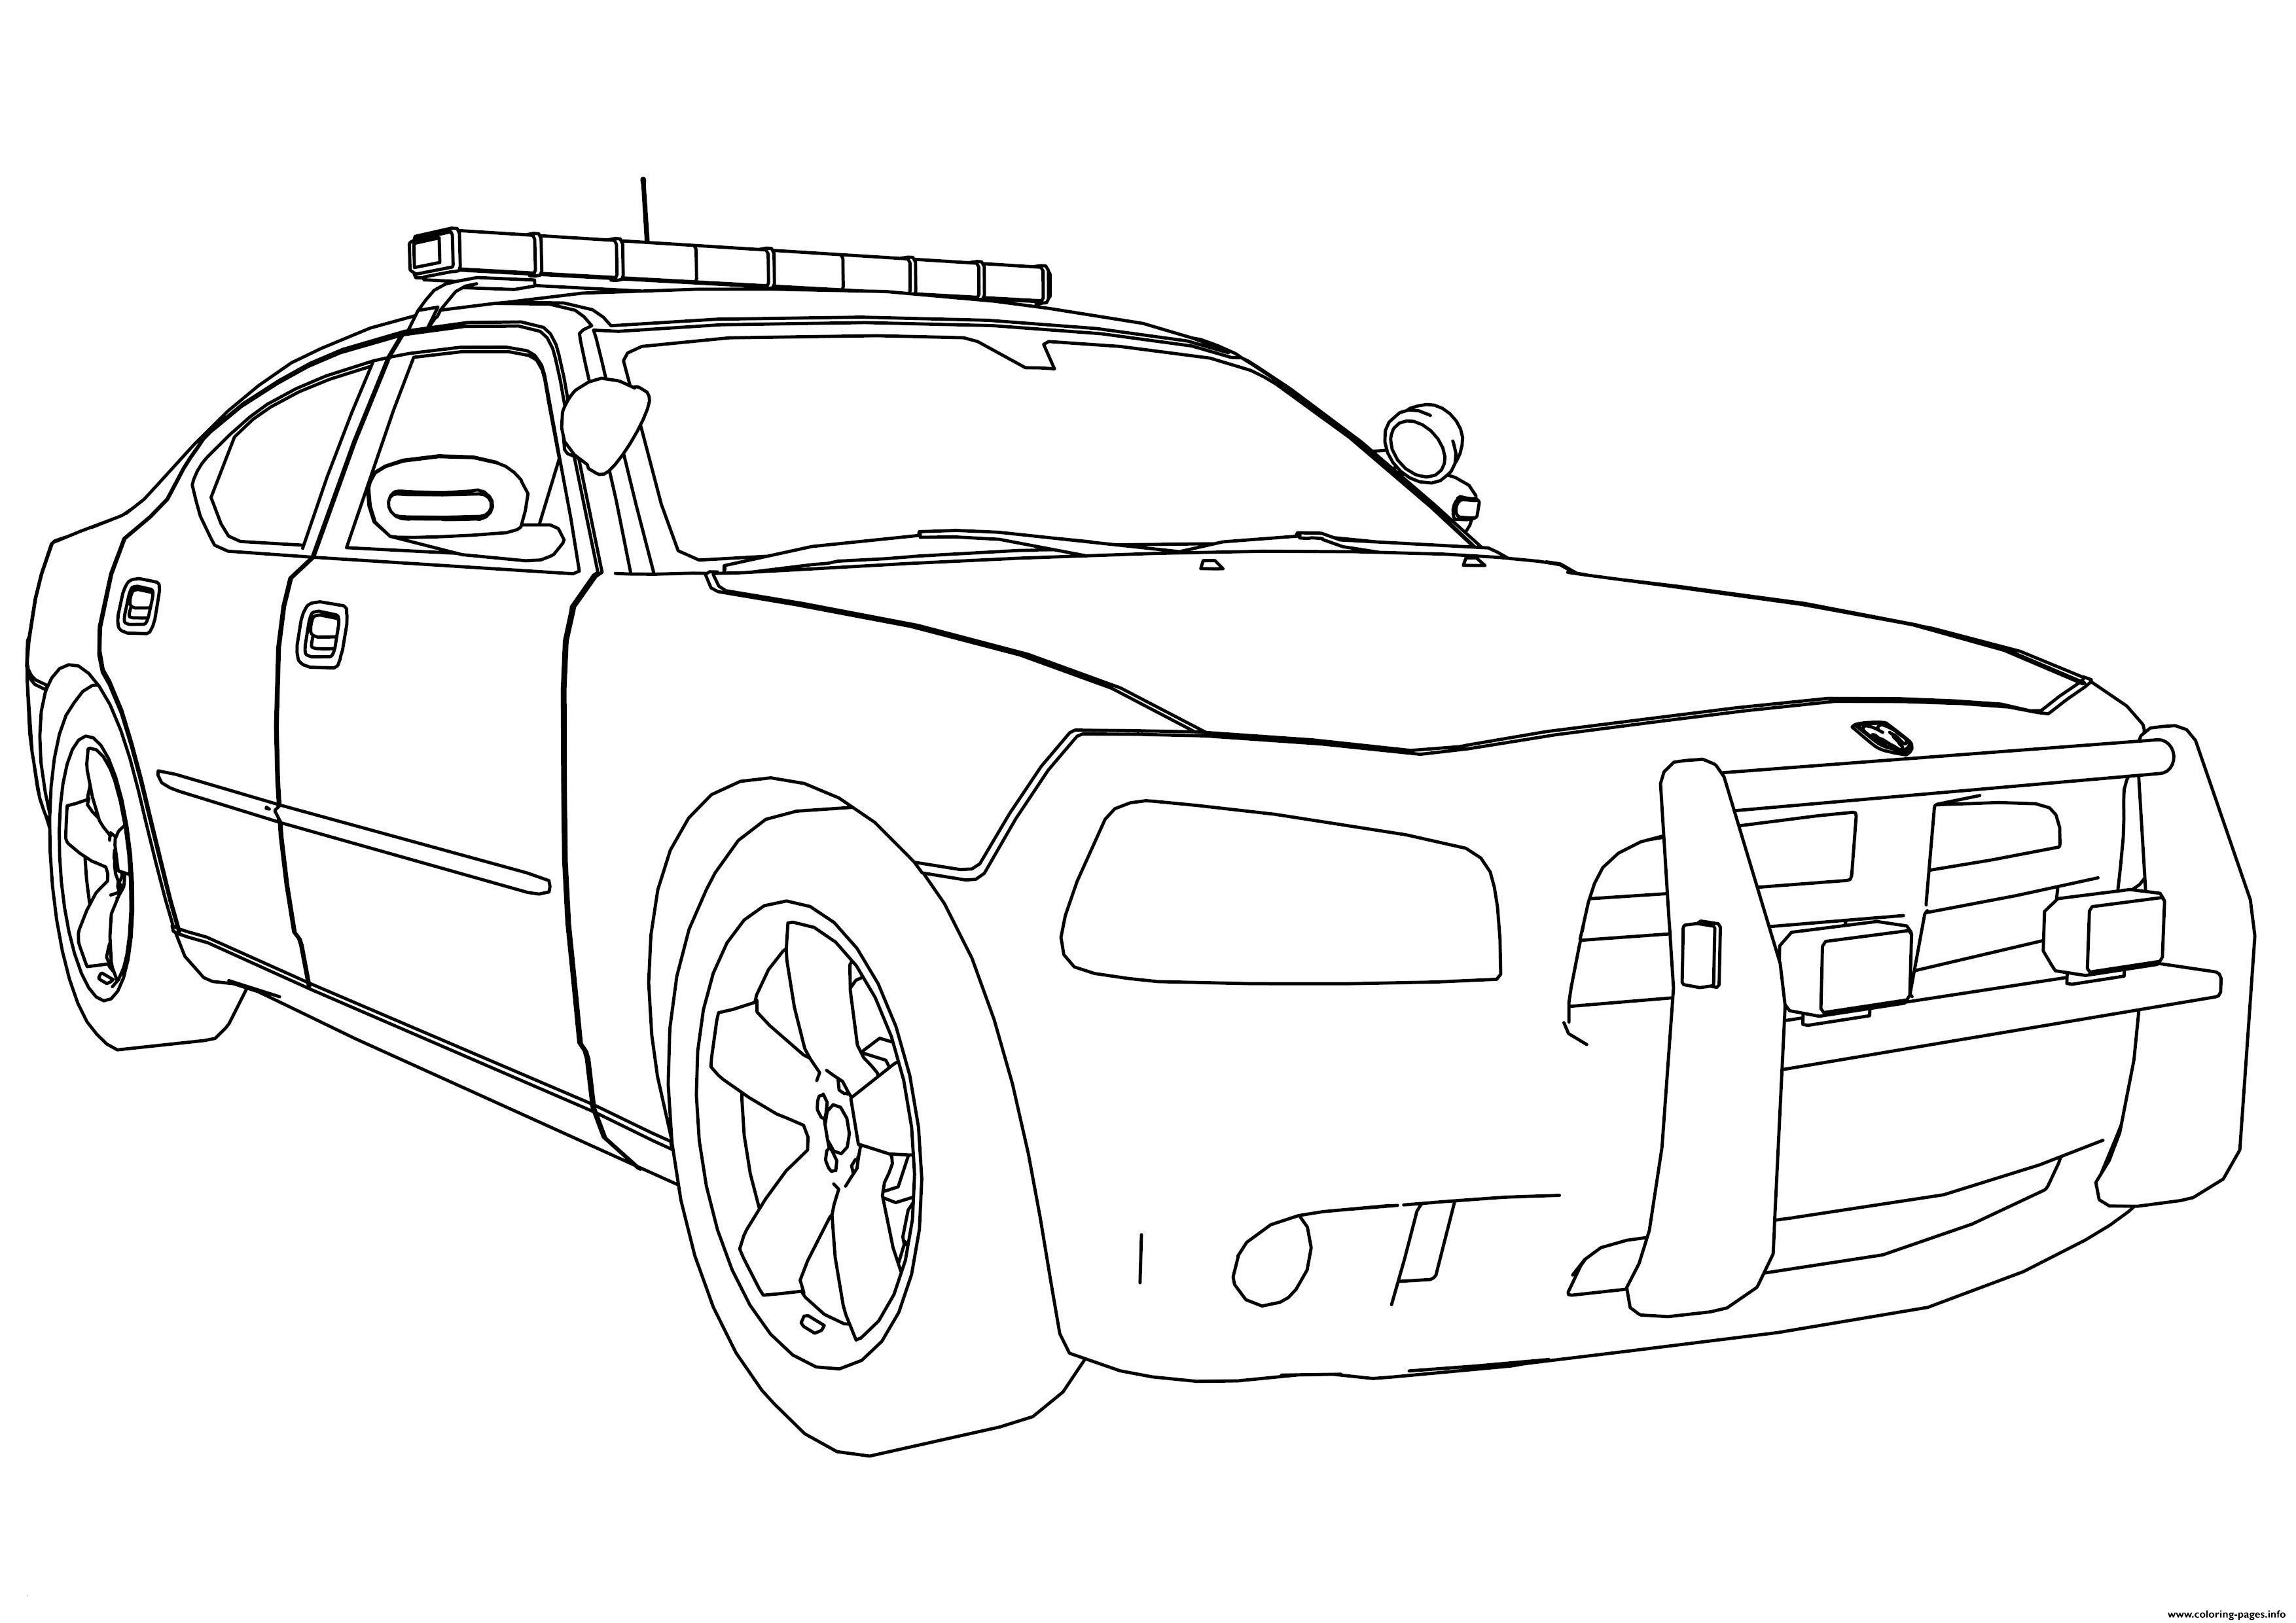 ford truck coloring pages Collection-Muscle Car Coloring Pages Awesome Beste Muscle Car Malbuch Best ford Mustang Ausmalbilder 8-h